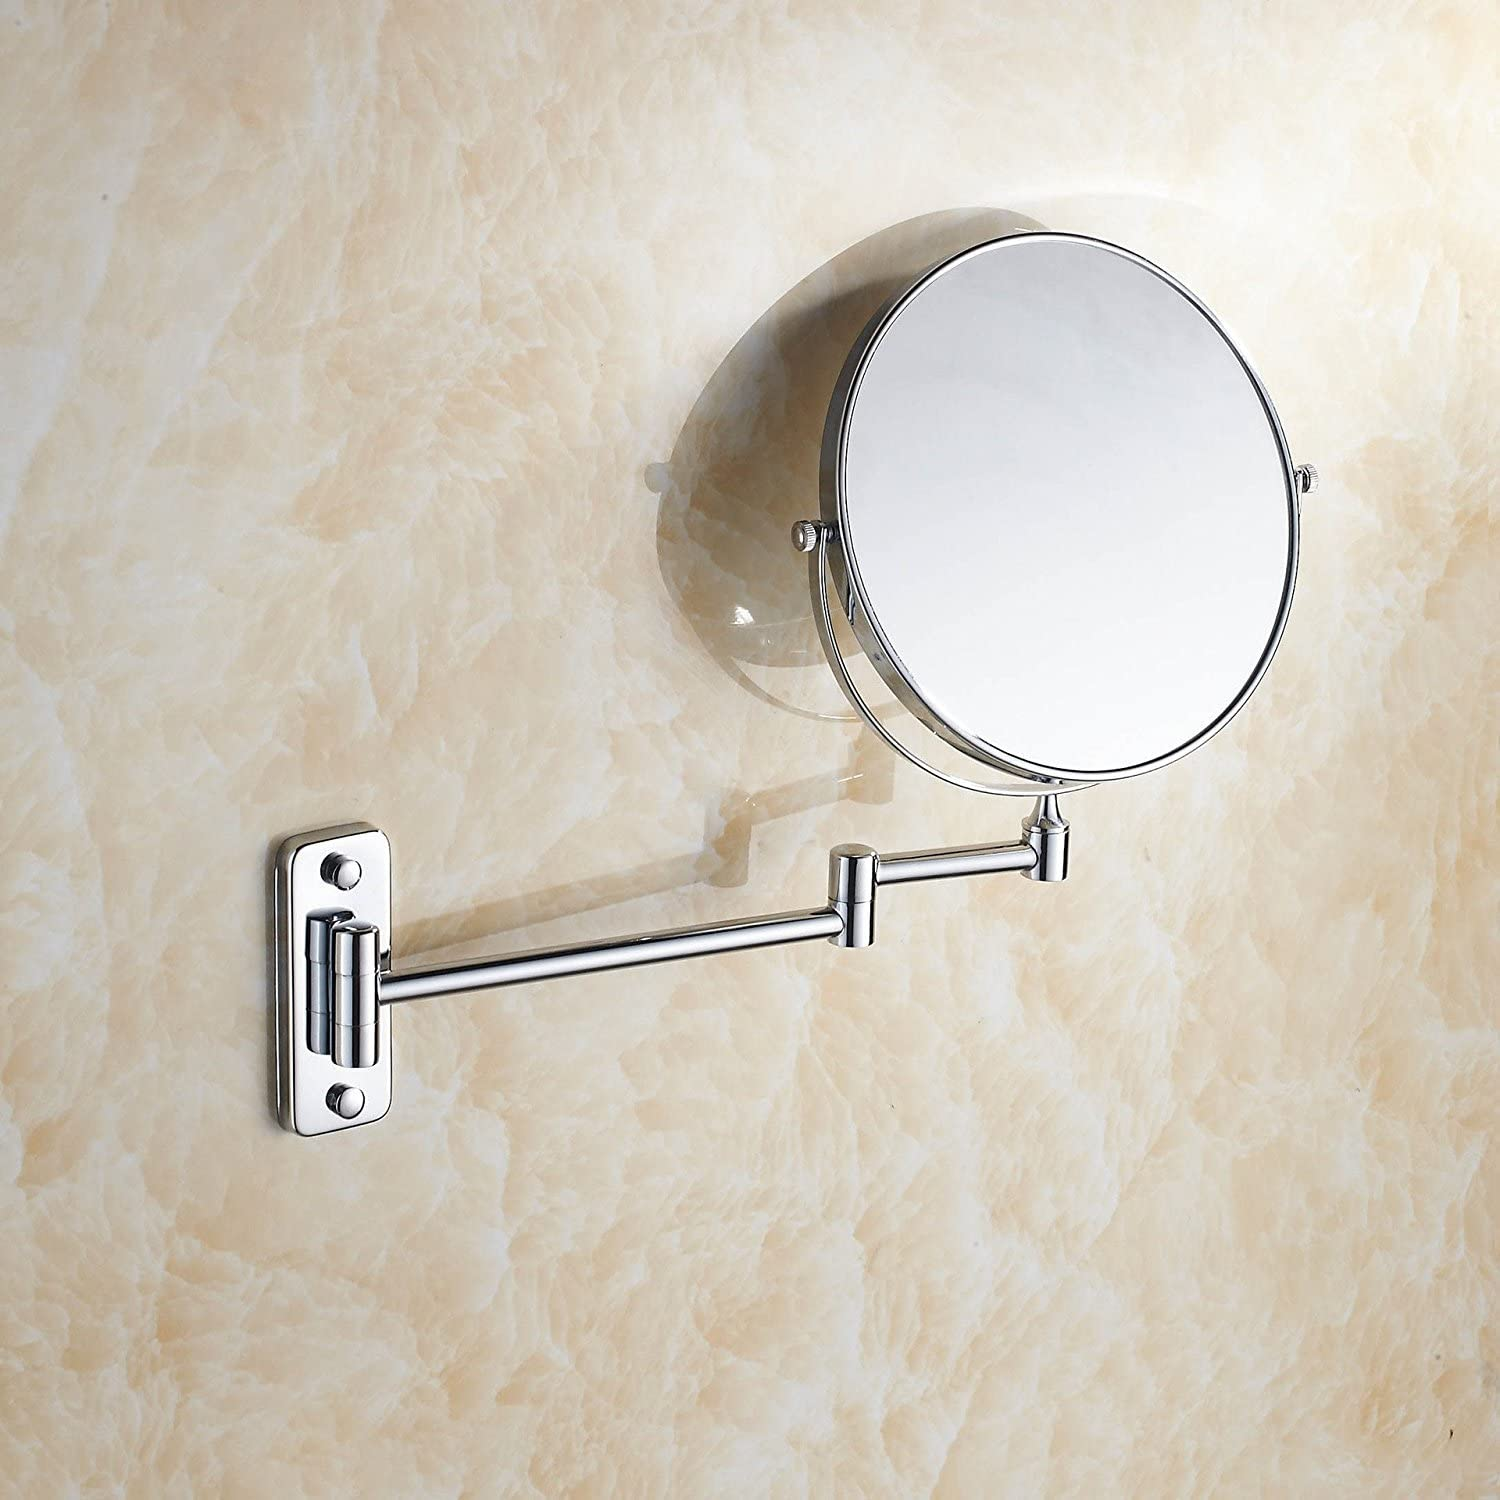 Stainless steel chrome-plated bathroom magnifying glass mirror bathroom mirror wall mount makeup mirror 8-inch